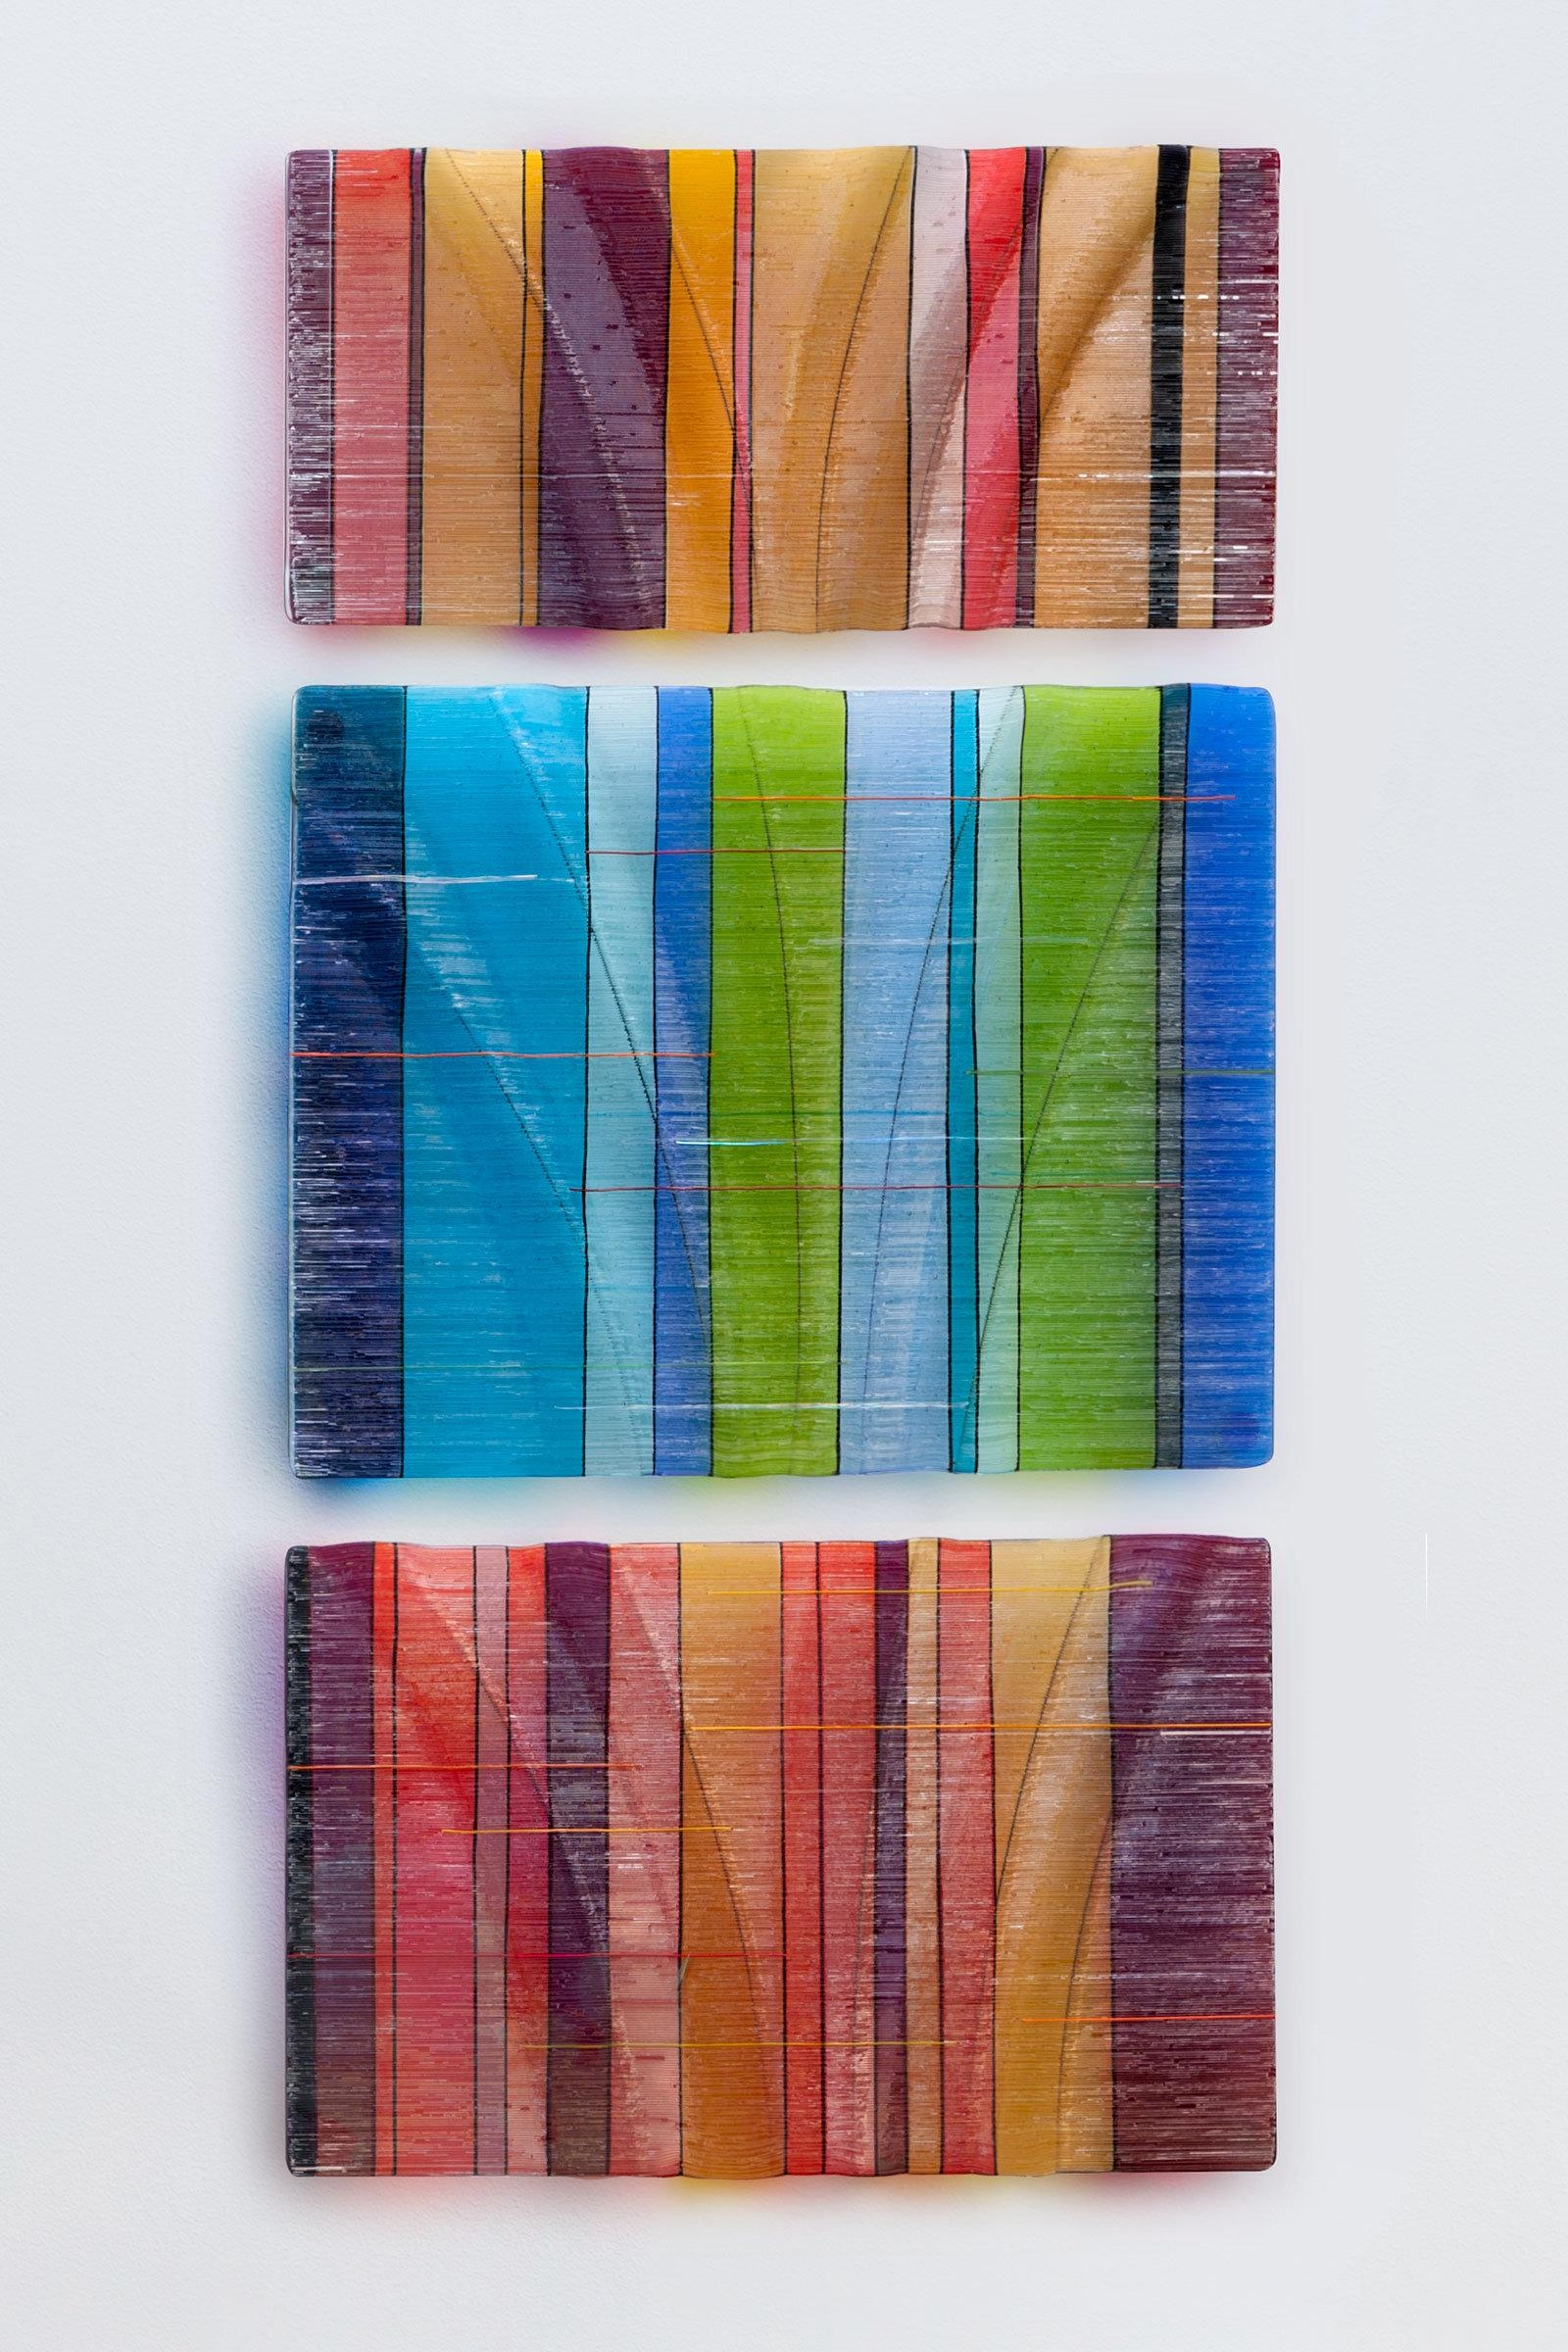 Glass Wall Artnorth American Artists | Artful Home With Regard To Fused Glass Wall Artwork (Image 20 of 20)